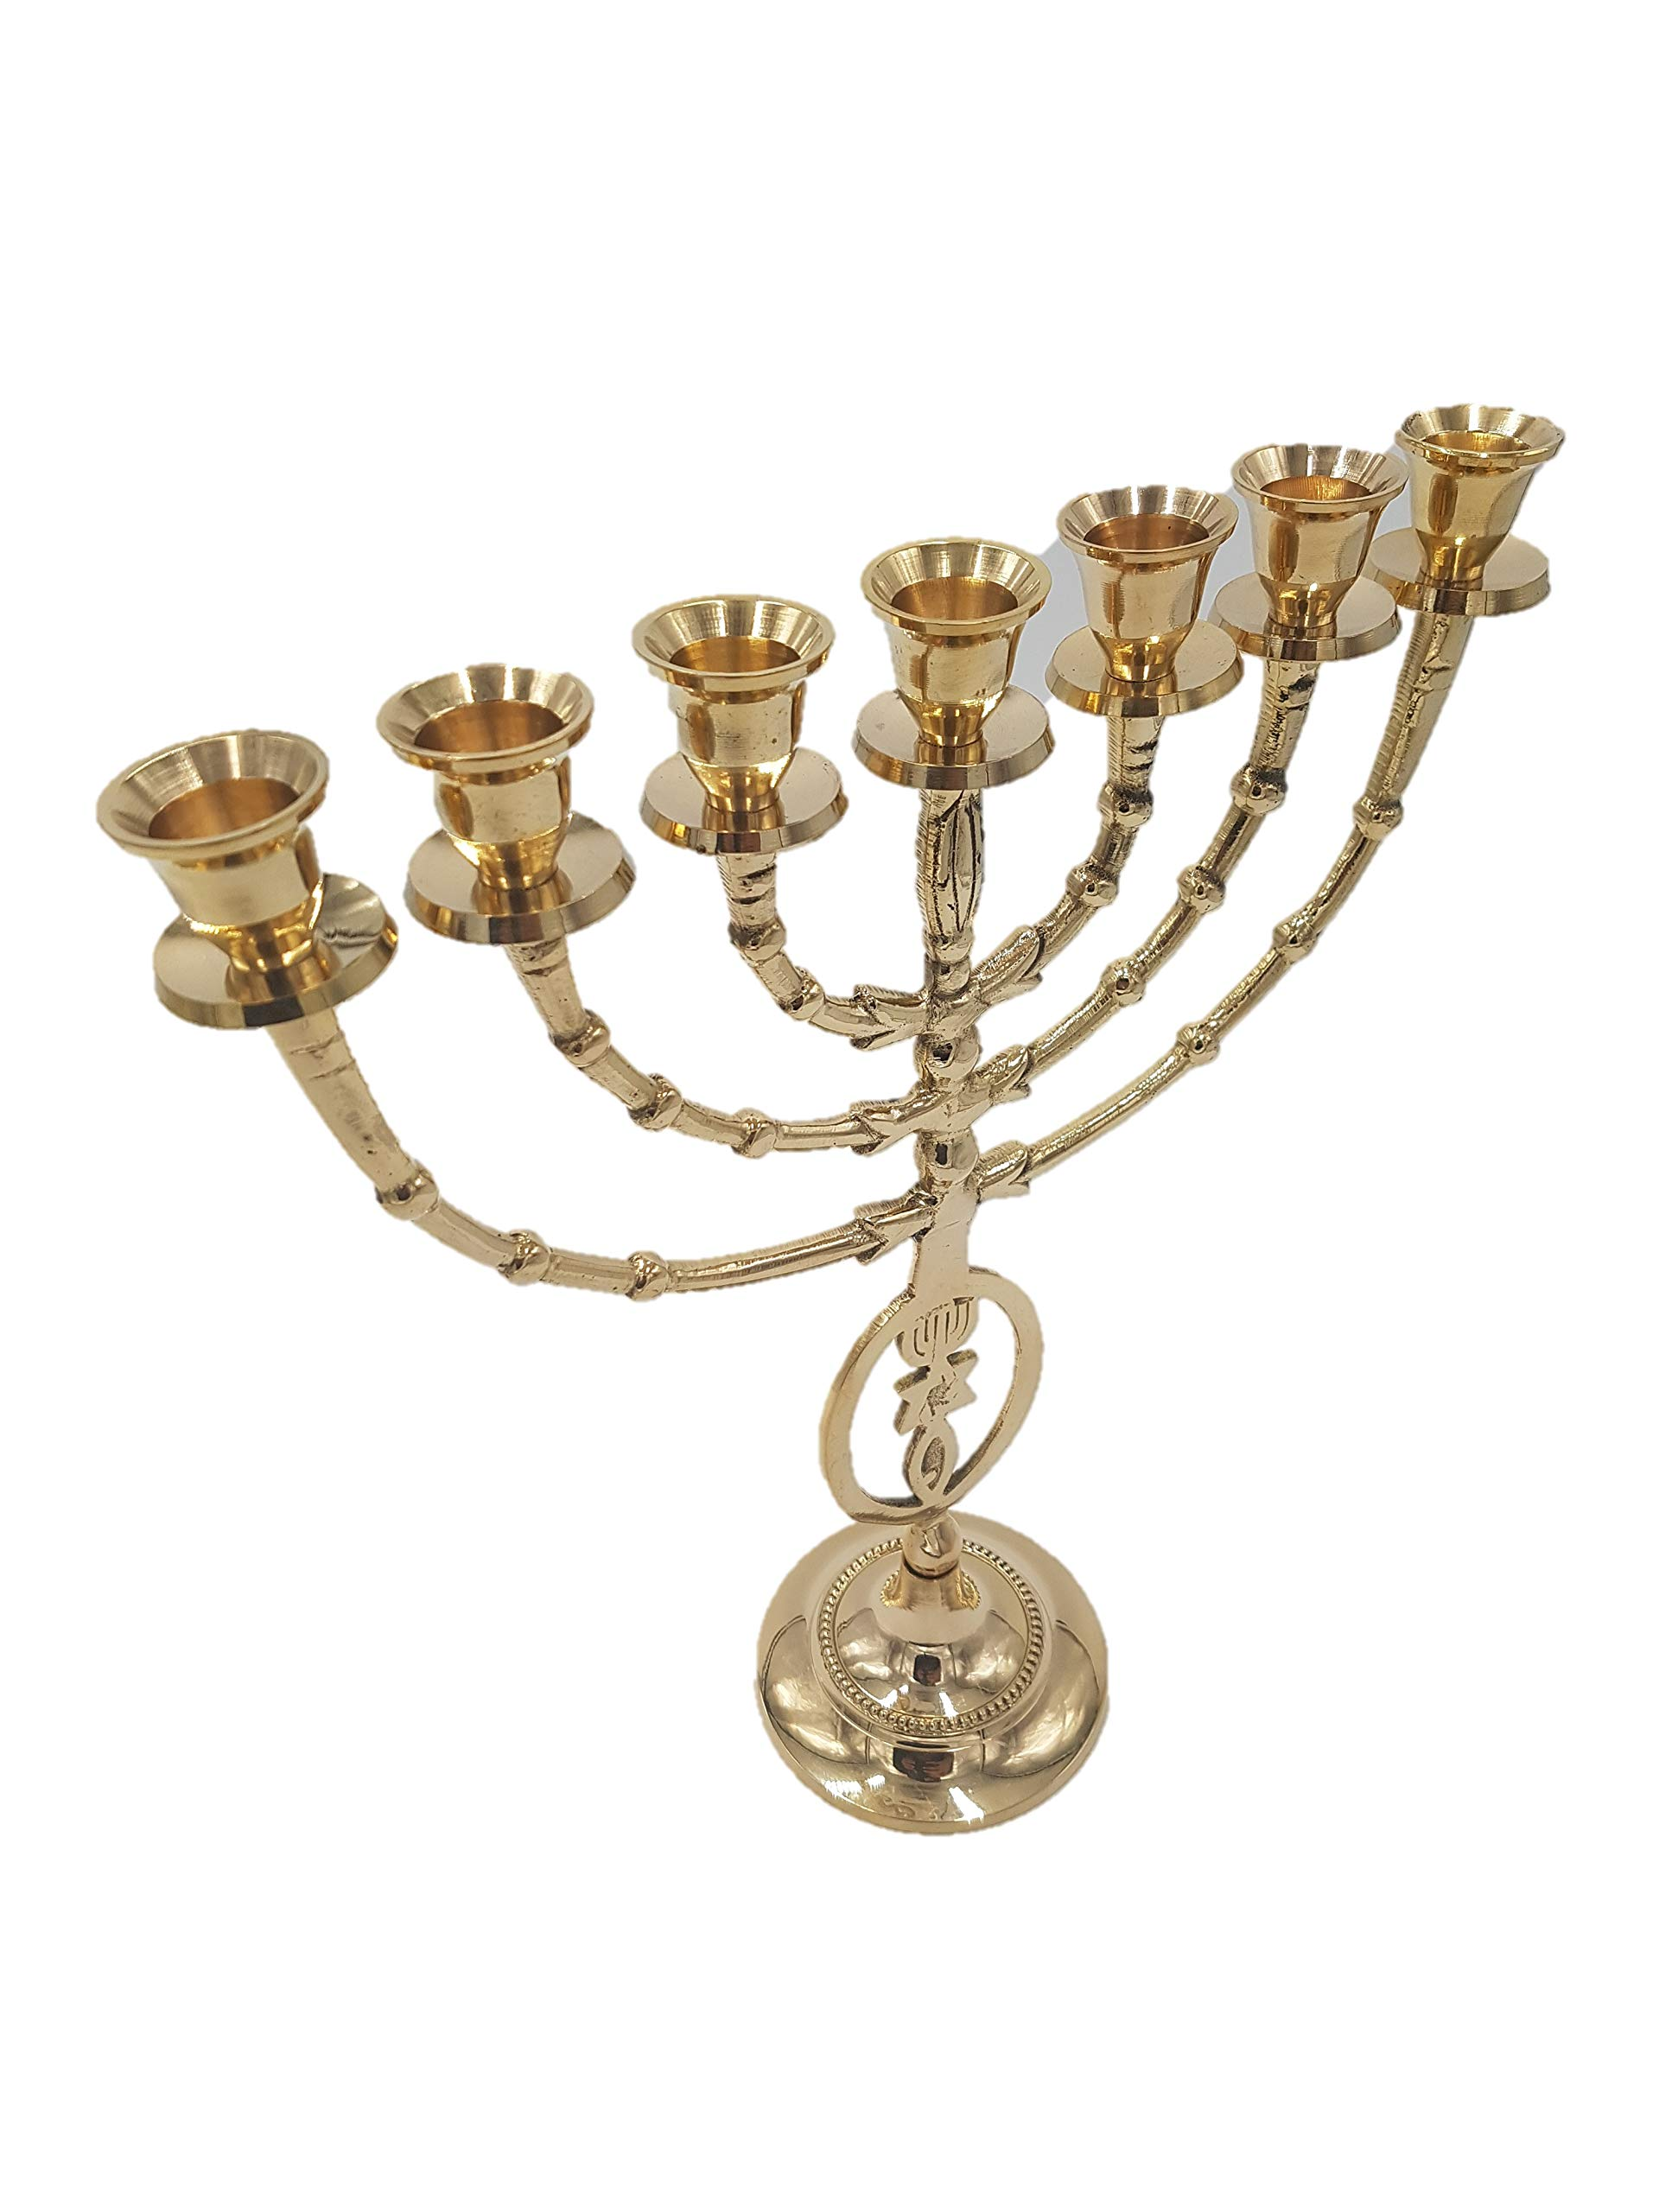 Yaliland Grafted in Messianic Brass Copper Vintage Menorah 12'' Judaica Israel 7 Candle Holder by Yaliland